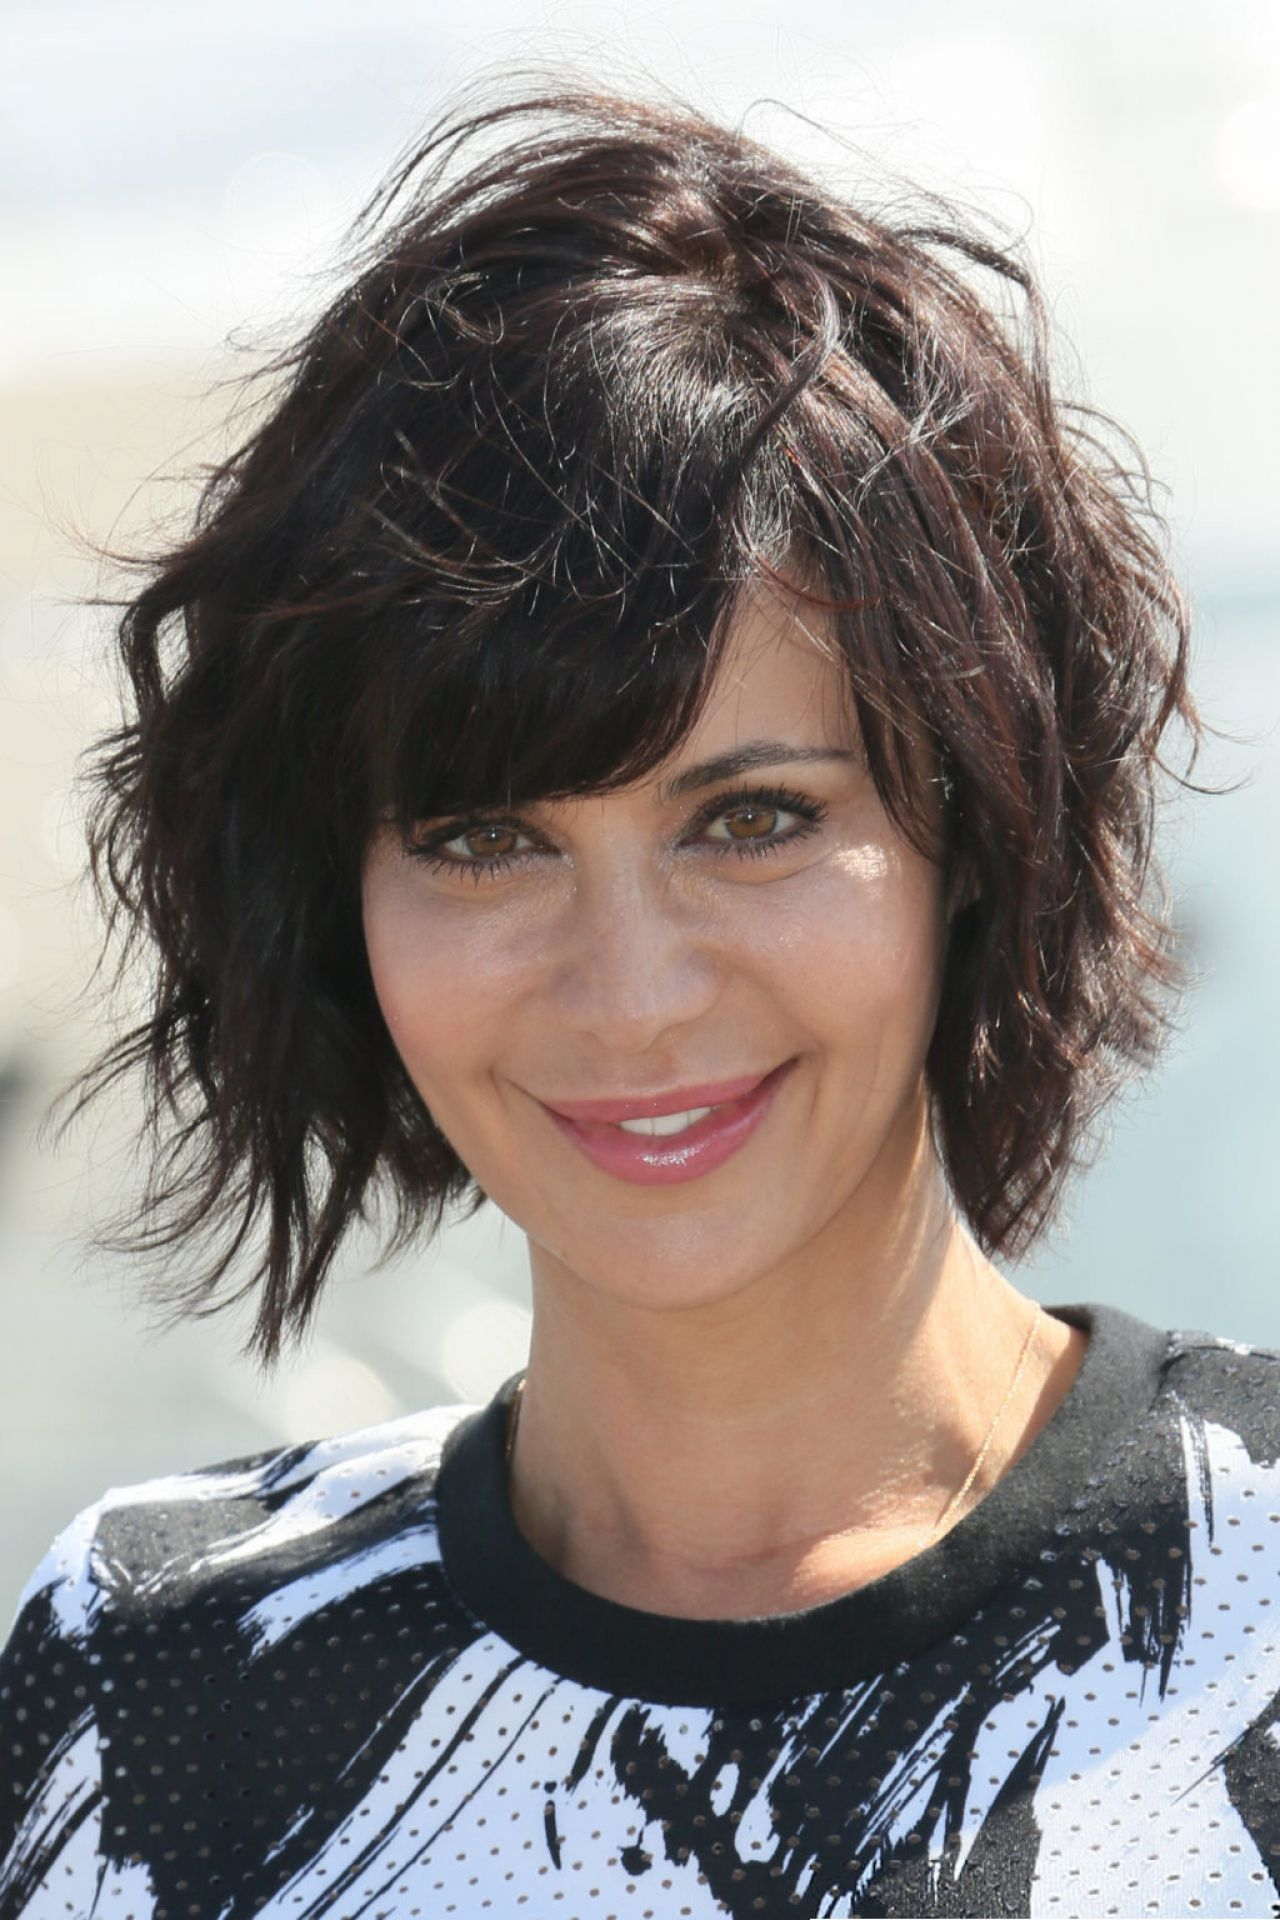 i love her hair like this! catherine bell -as cassie